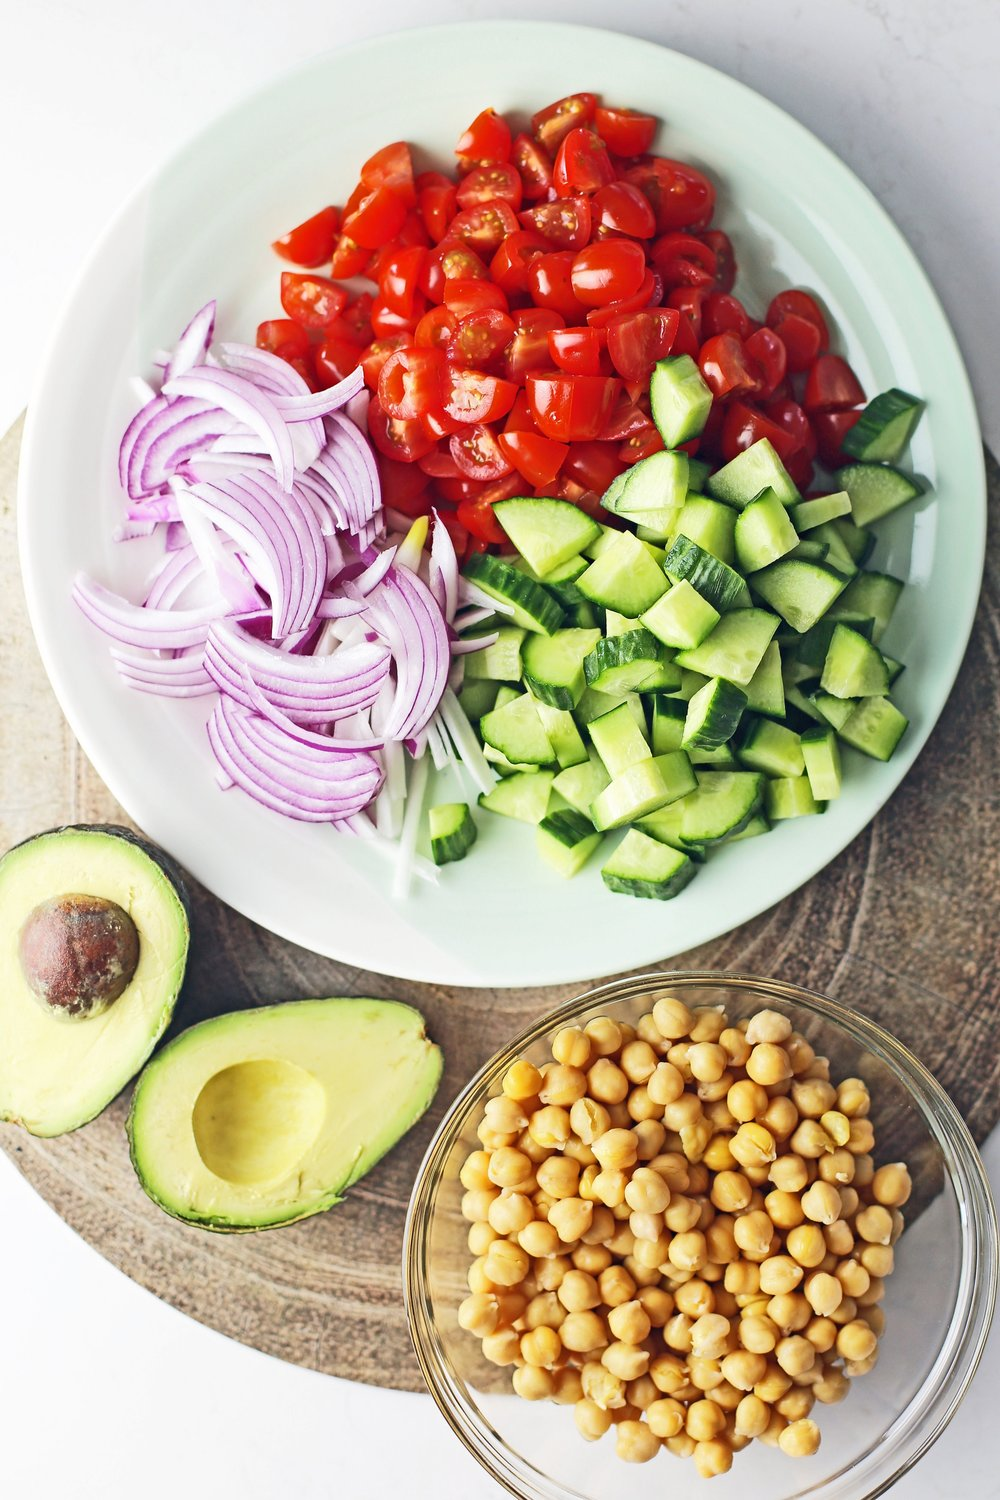 A large plate containing chopped and sliced English cucumber, grape tomatoes, and red onions, a bowl of cooked chickpeas, and an avocado cut in half.